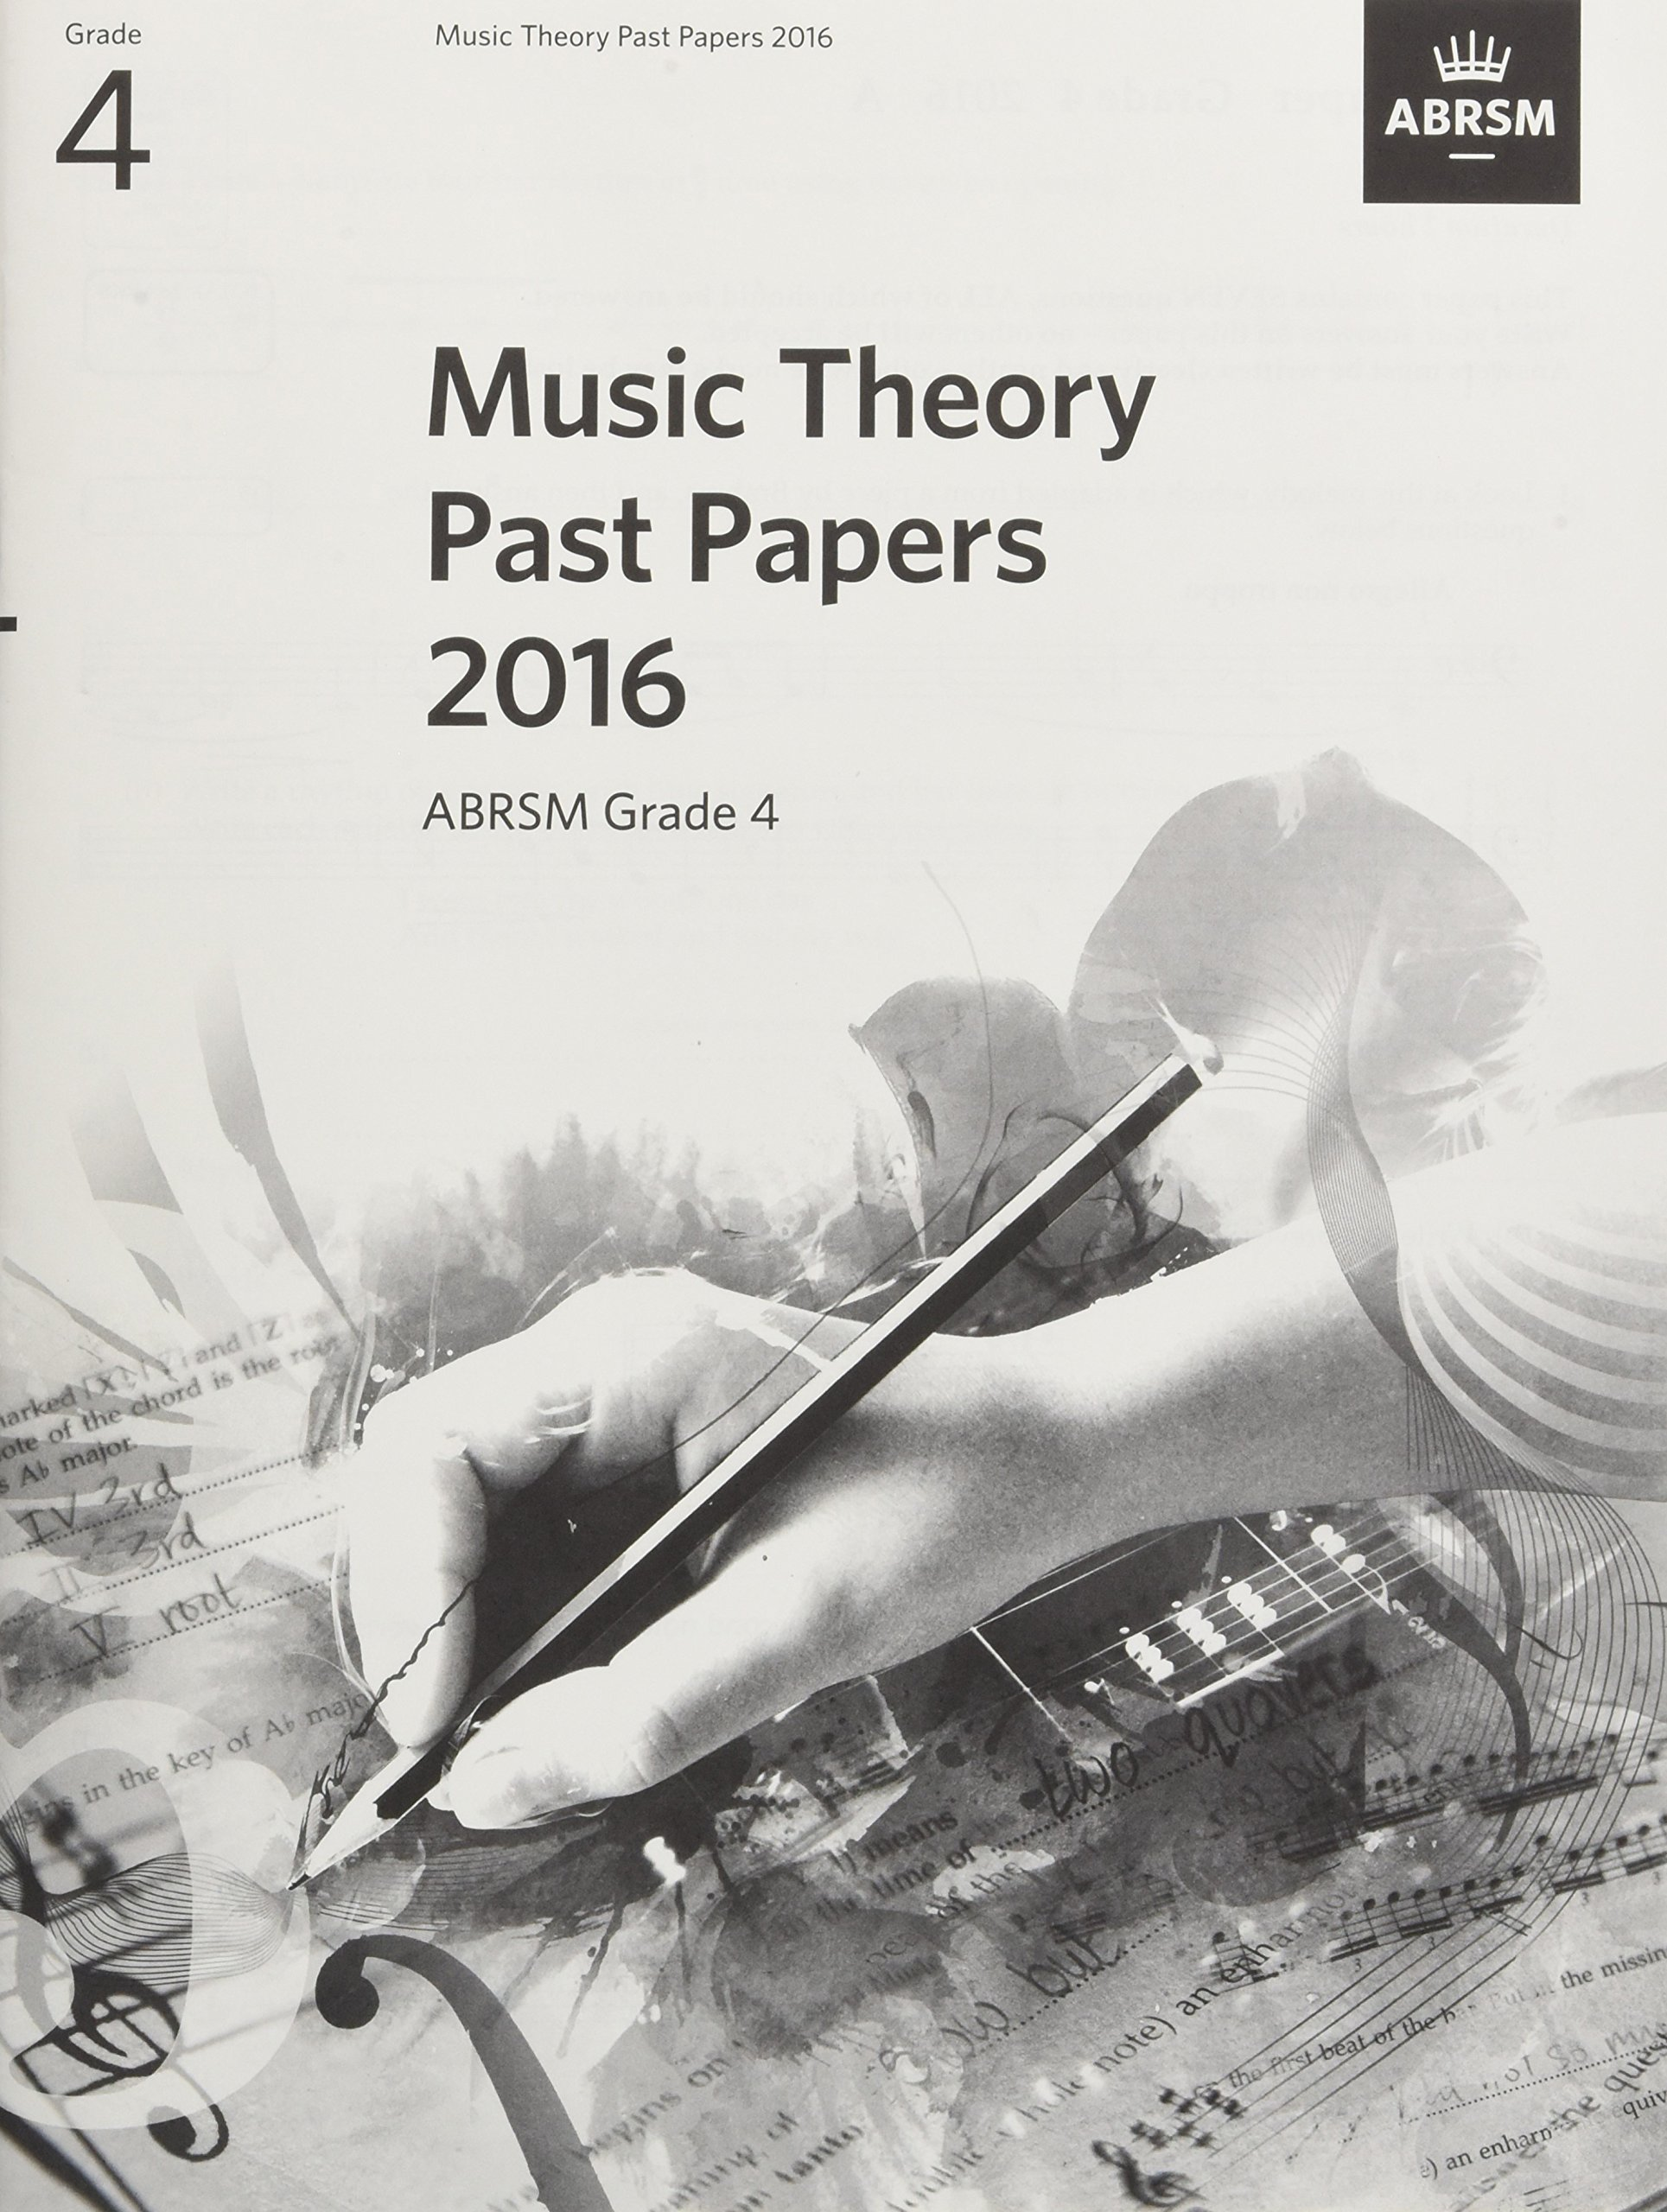 Music Theory Past Papers 2016 Model Answers, ABRSM Grade 8 (Theory